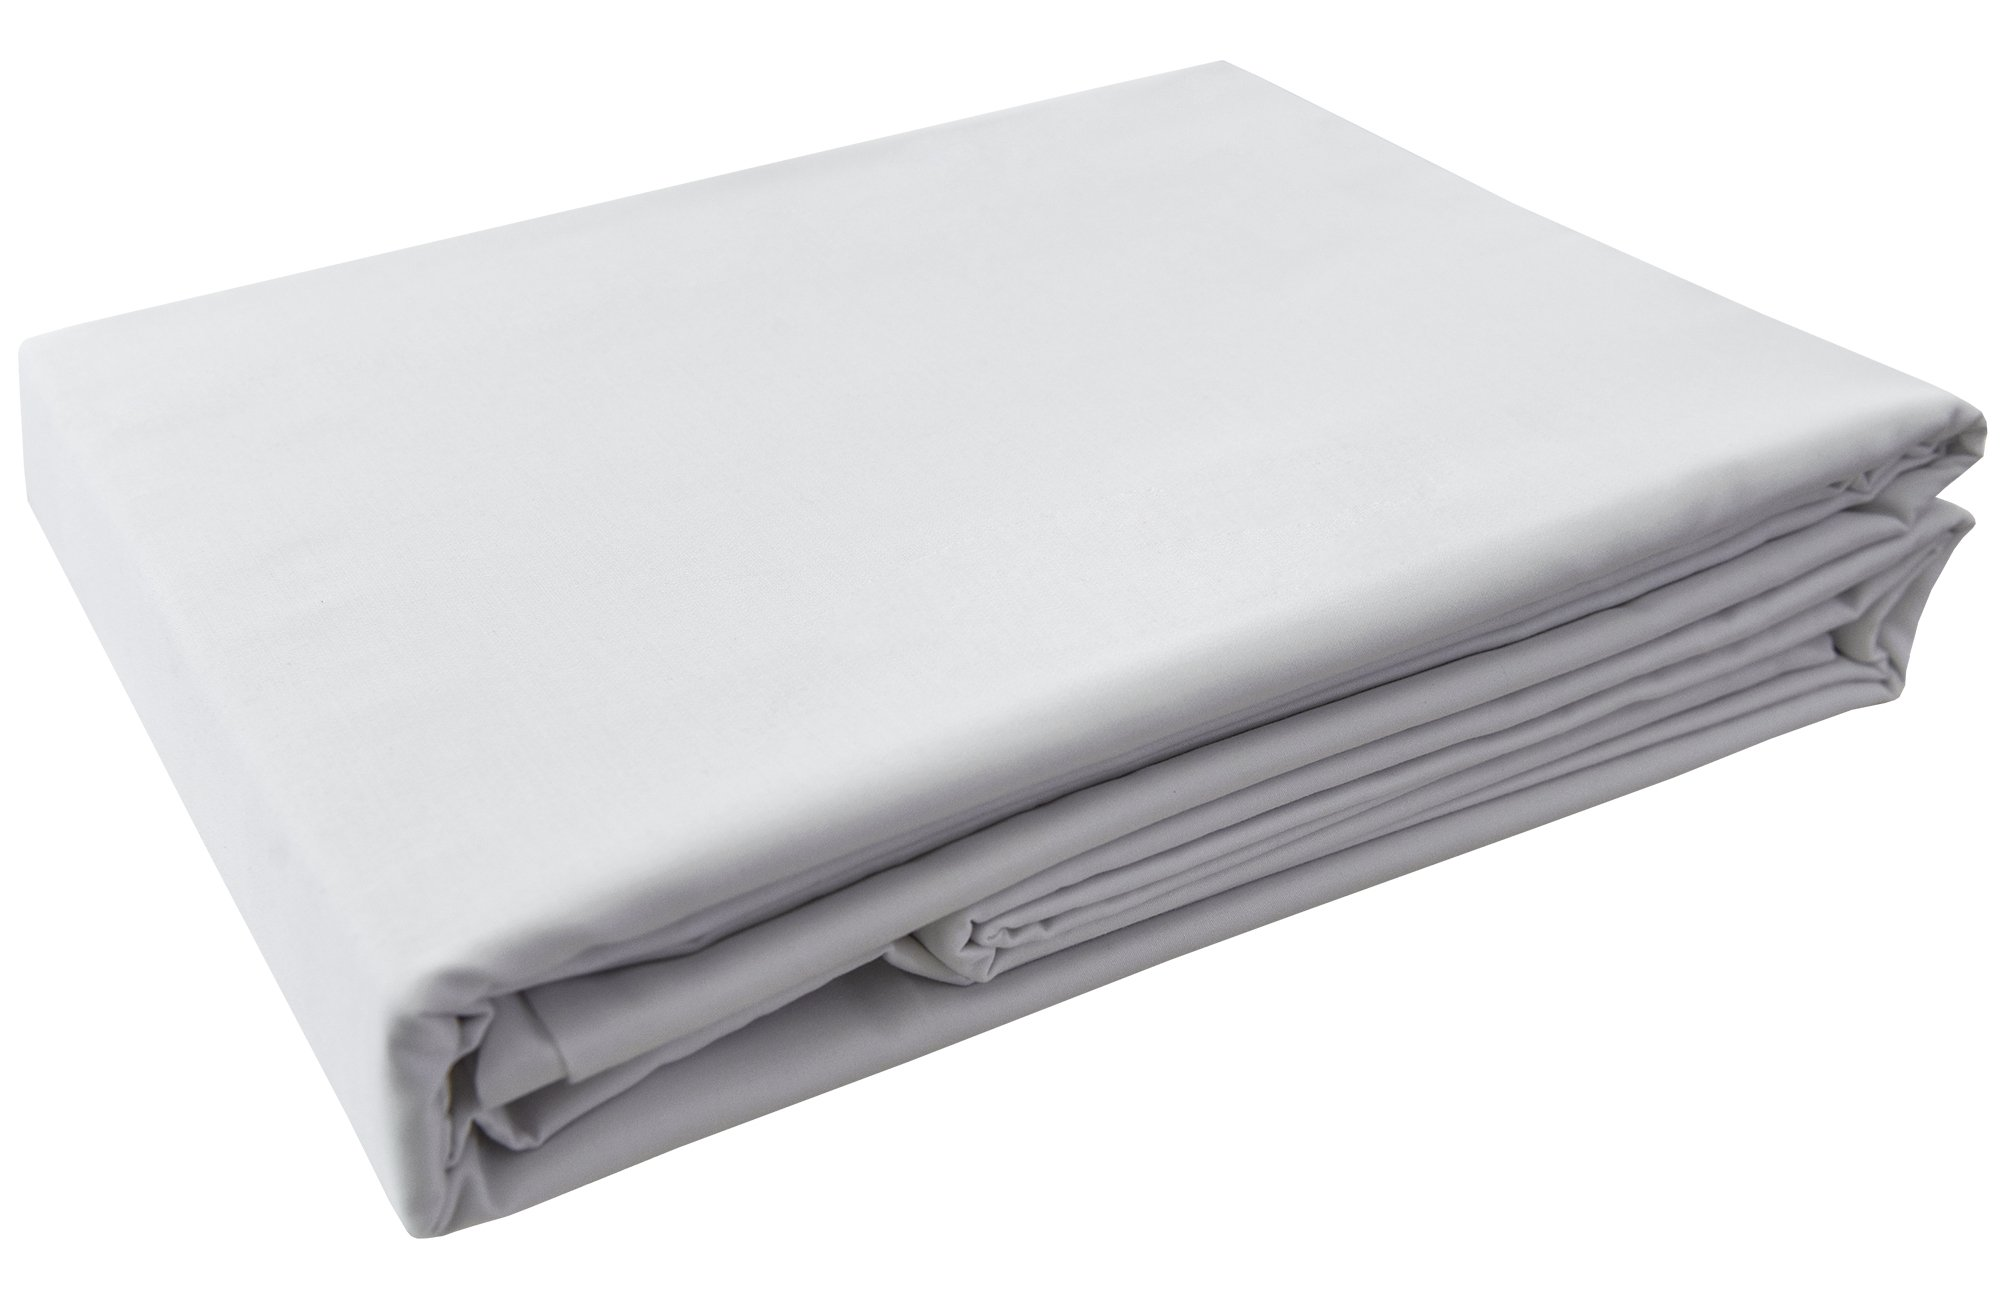 PHF Hotel Collection Flat Sheet 200T Cotton Polyester Percale 1 Piece King Size White